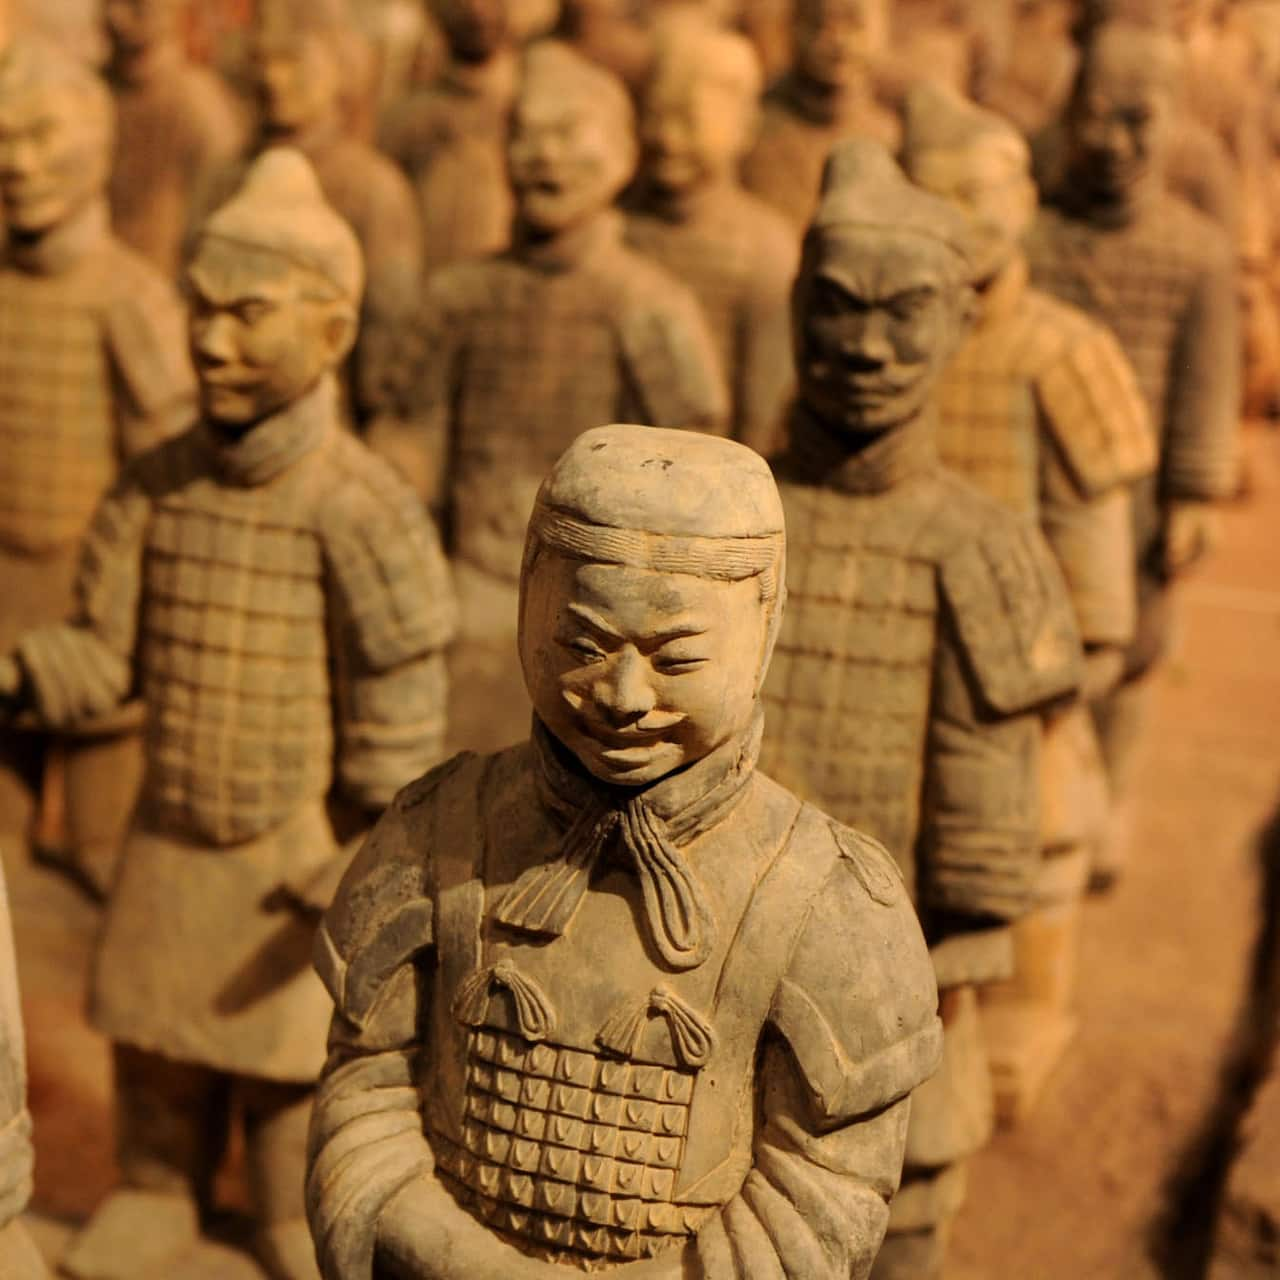 Ancient terracotta sculptures of warriors, standing in formation